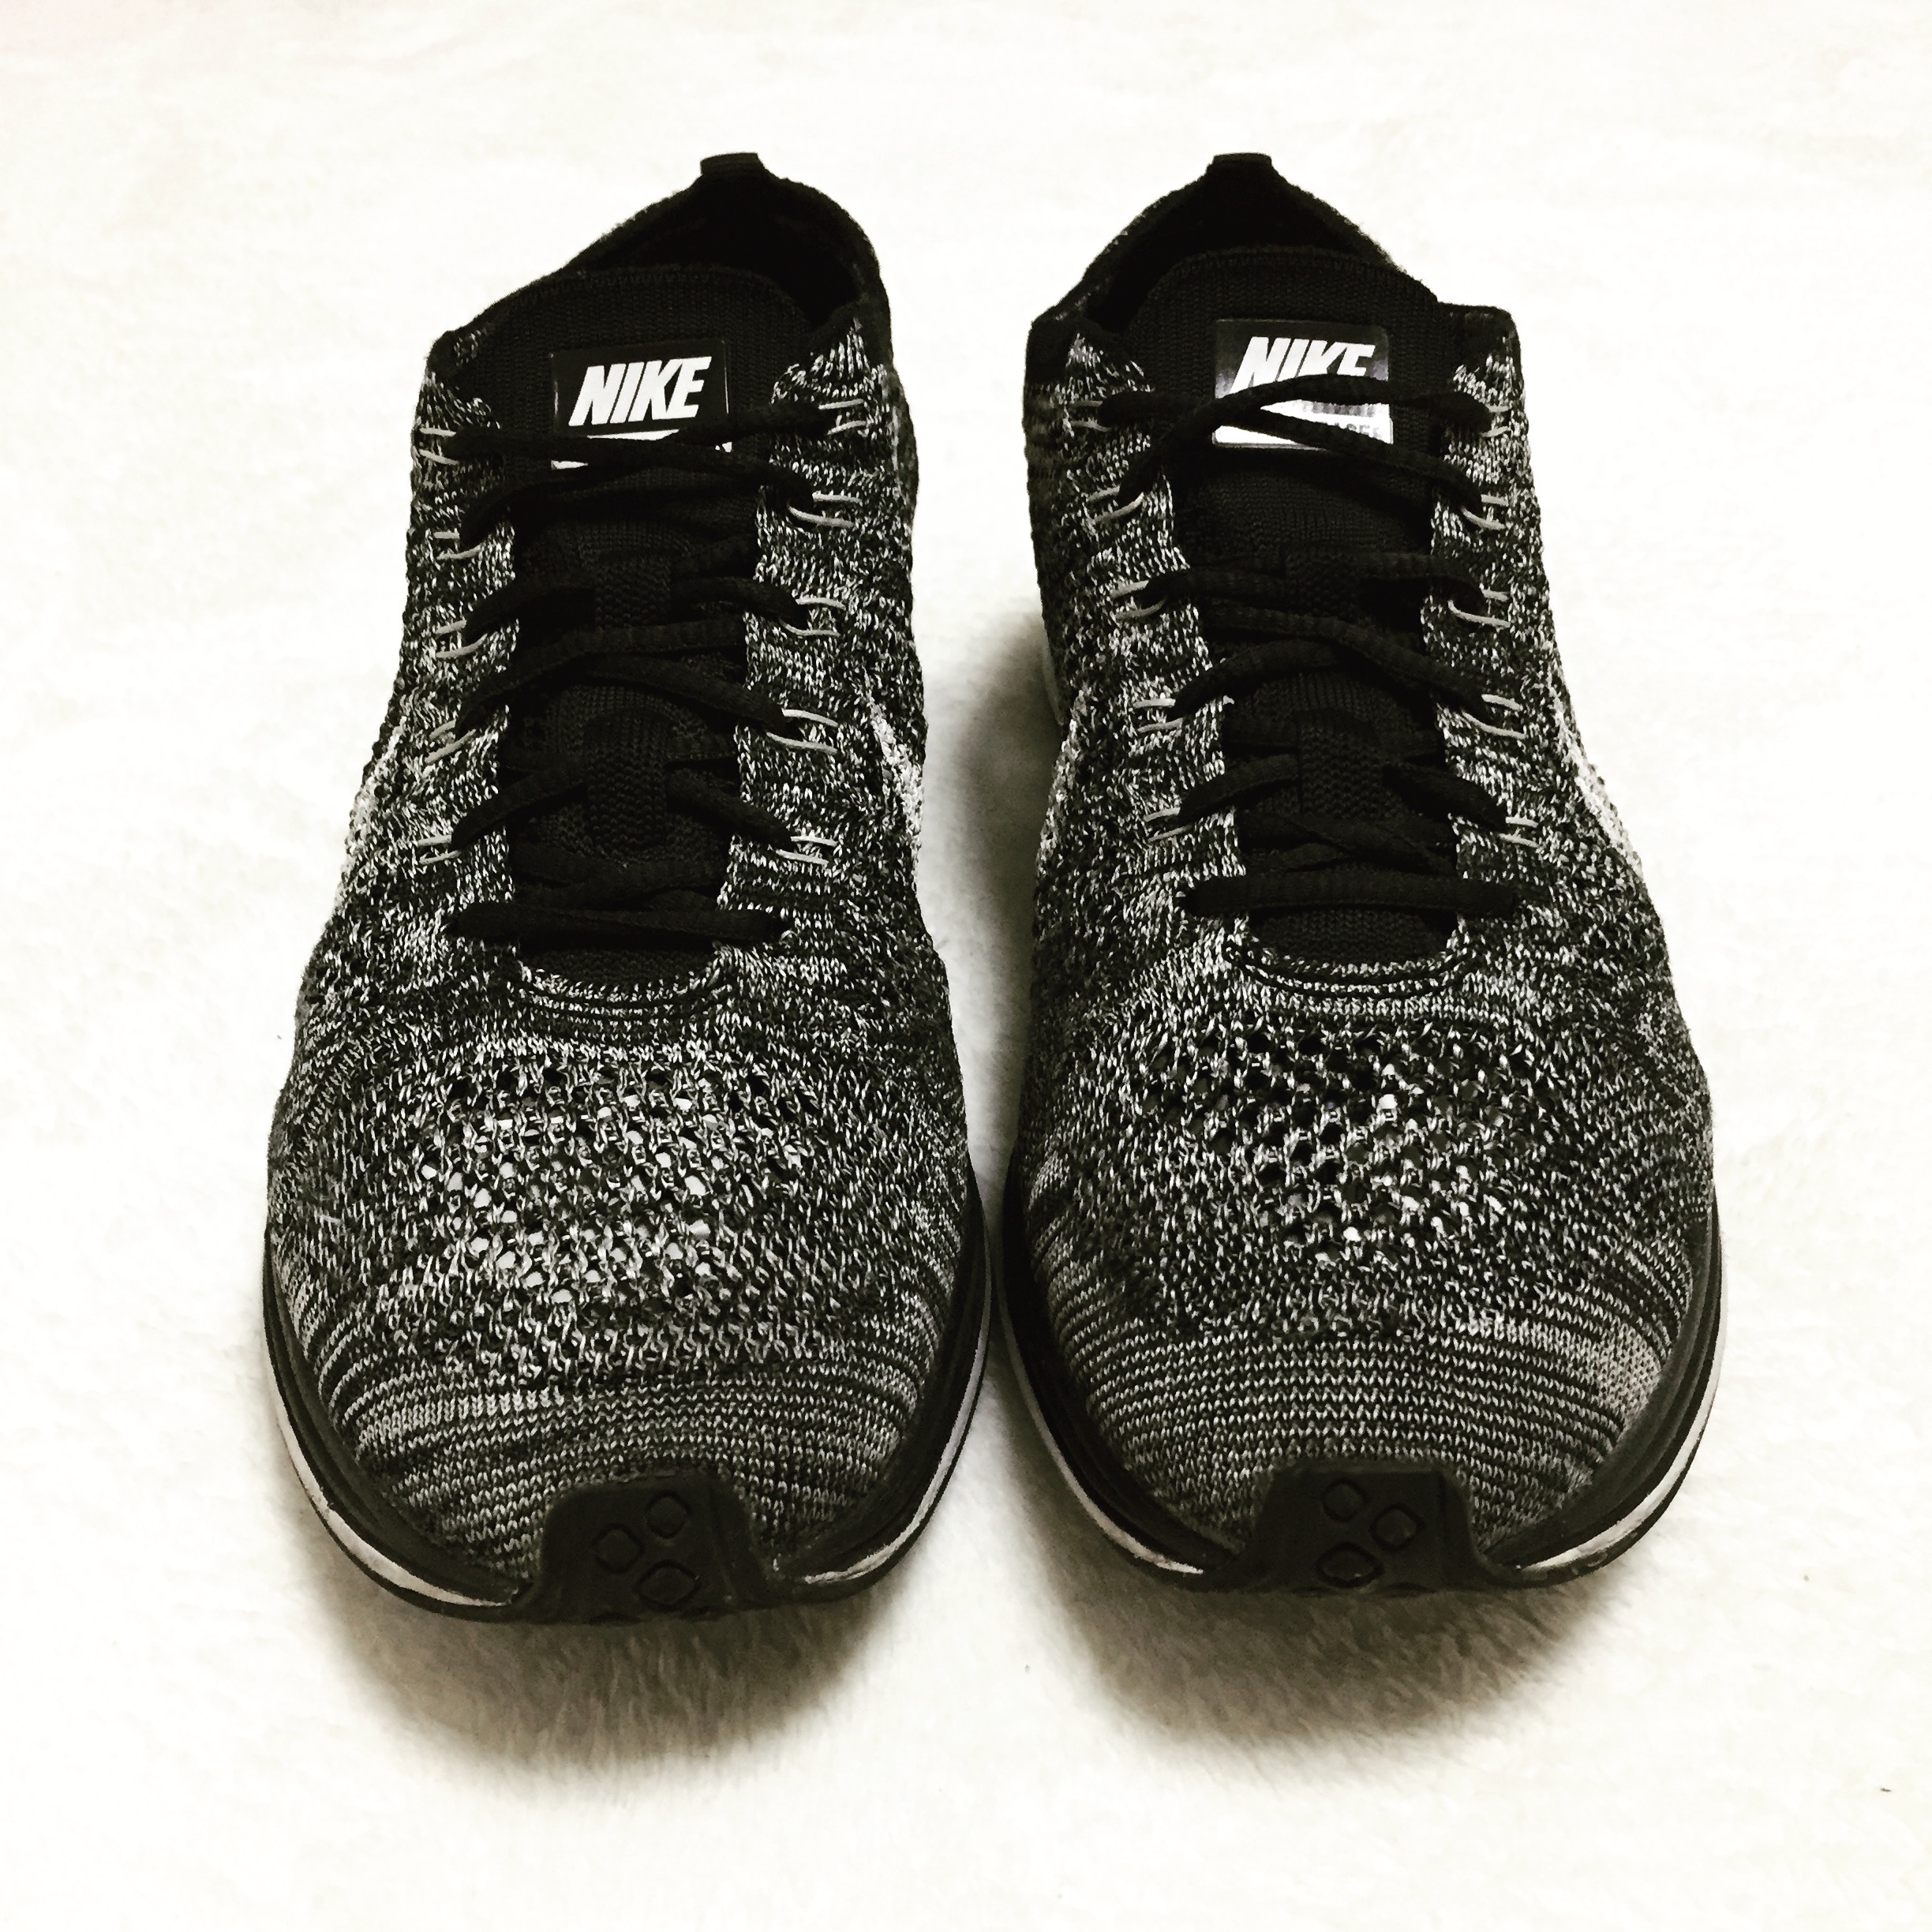 8efab8fb9e4b3 nike-flyknit-racer-oreo-cookies-and-cream-release-20170210-13.jpg ...